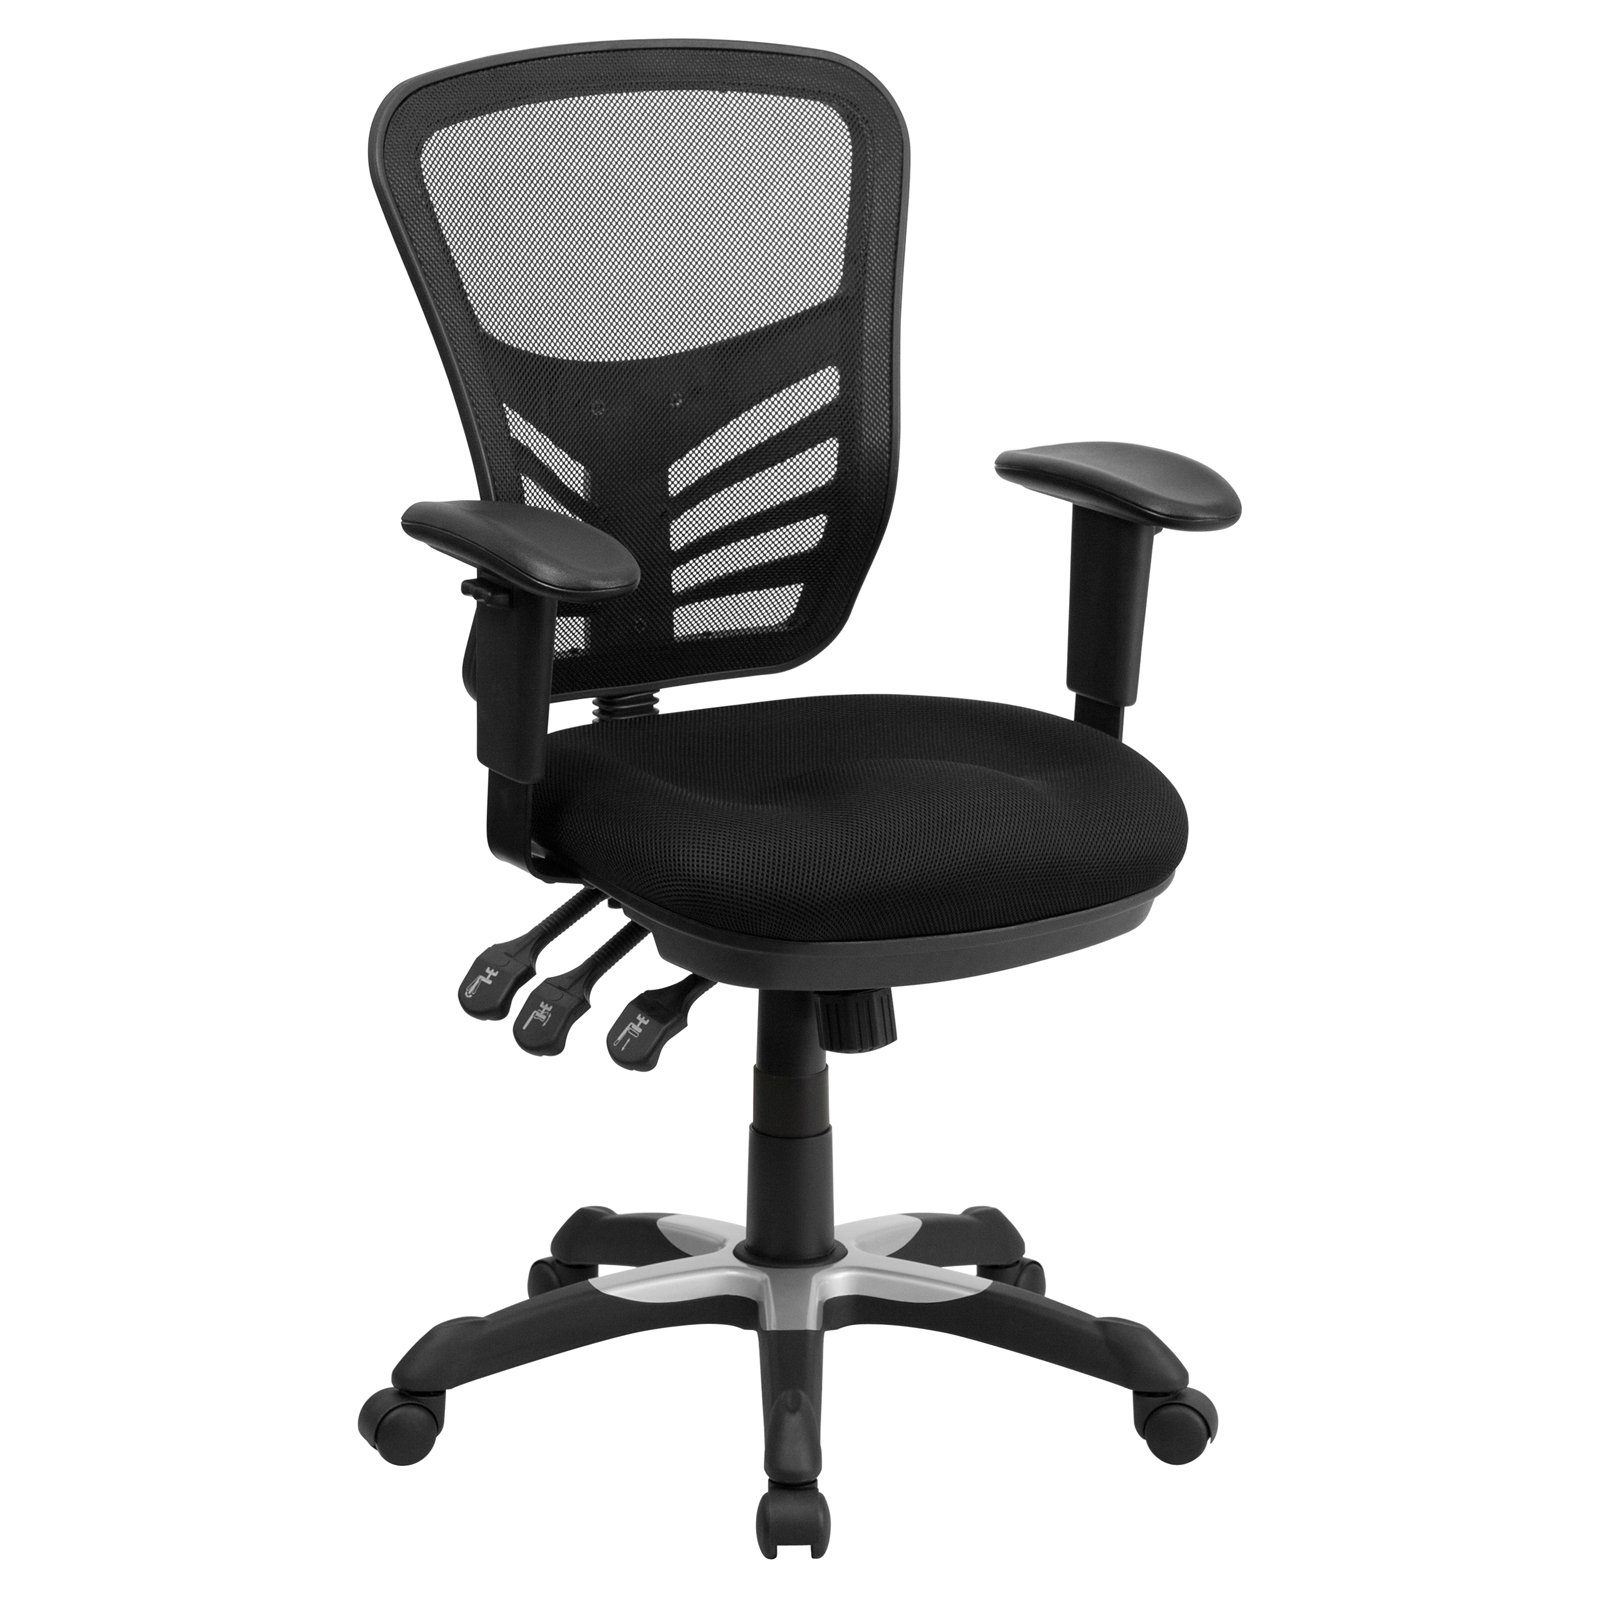 office chair controls. Flash Furniture Mid-Back Mesh Chair With Triple Paddle Control, Black Office Controls